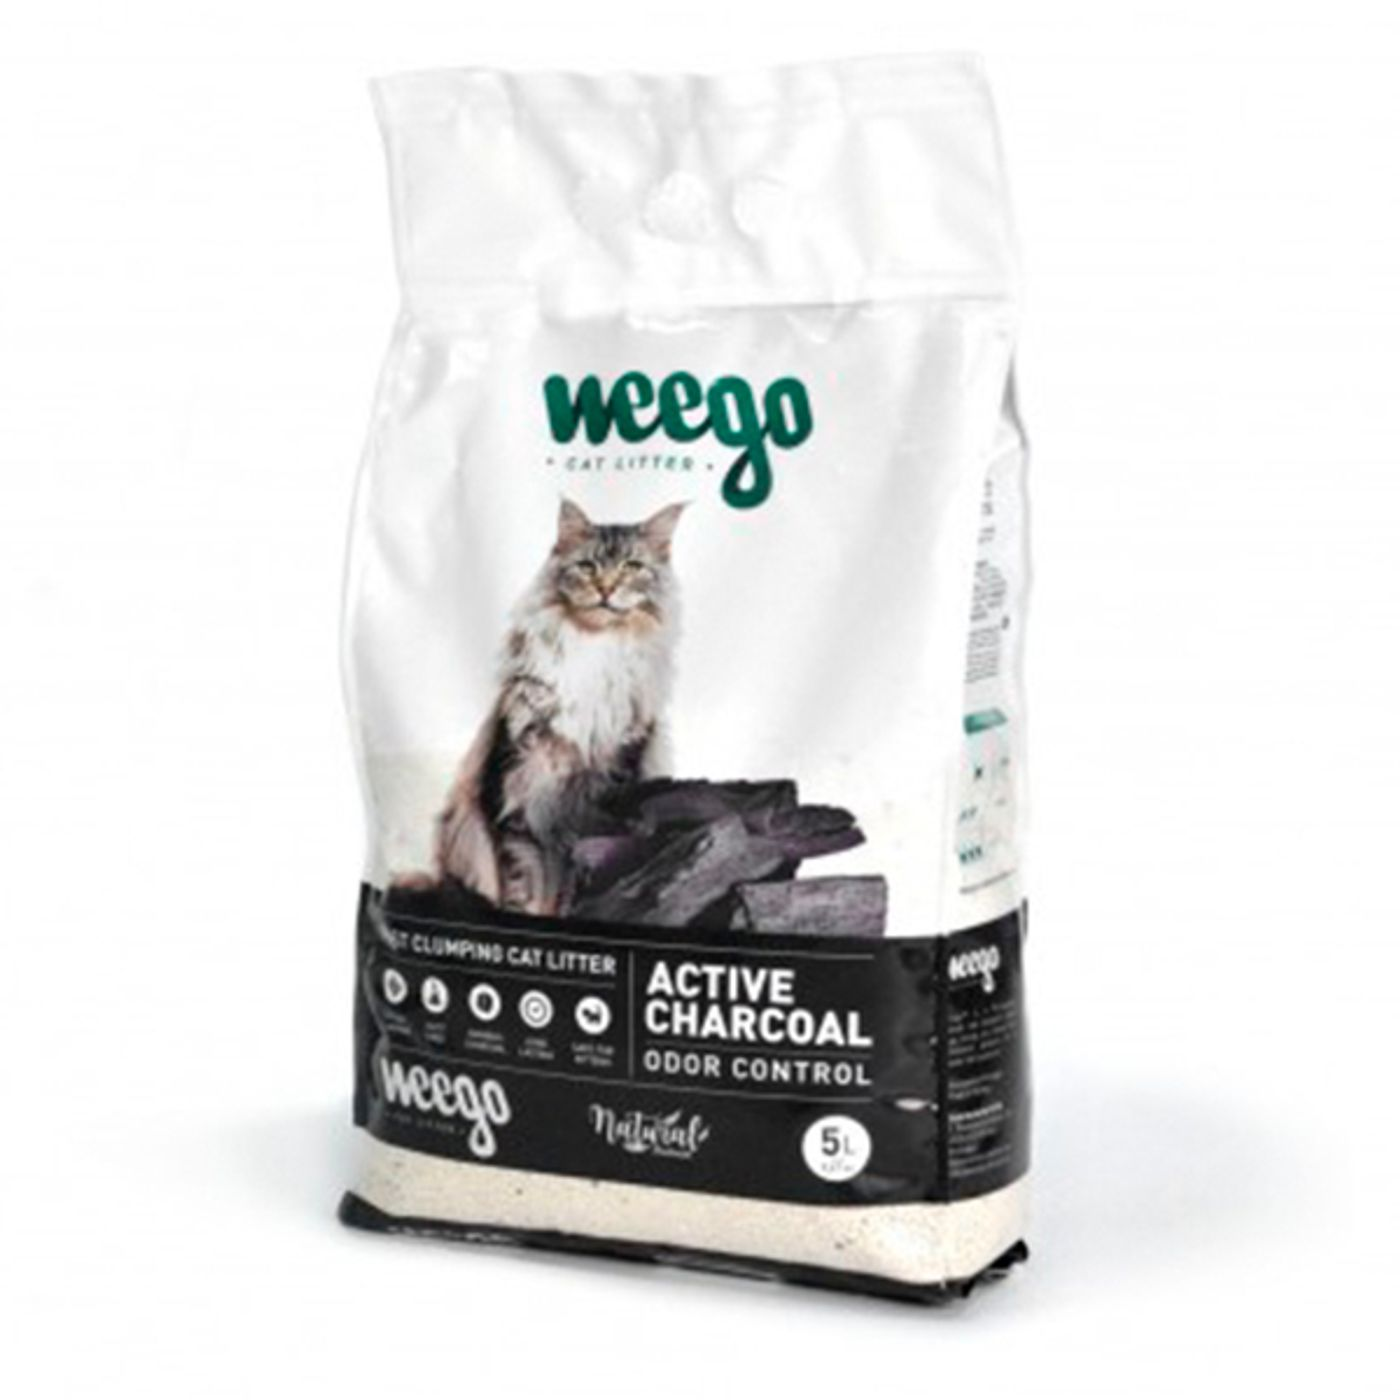 Weego-Cat-Litter-Active-Charcoal